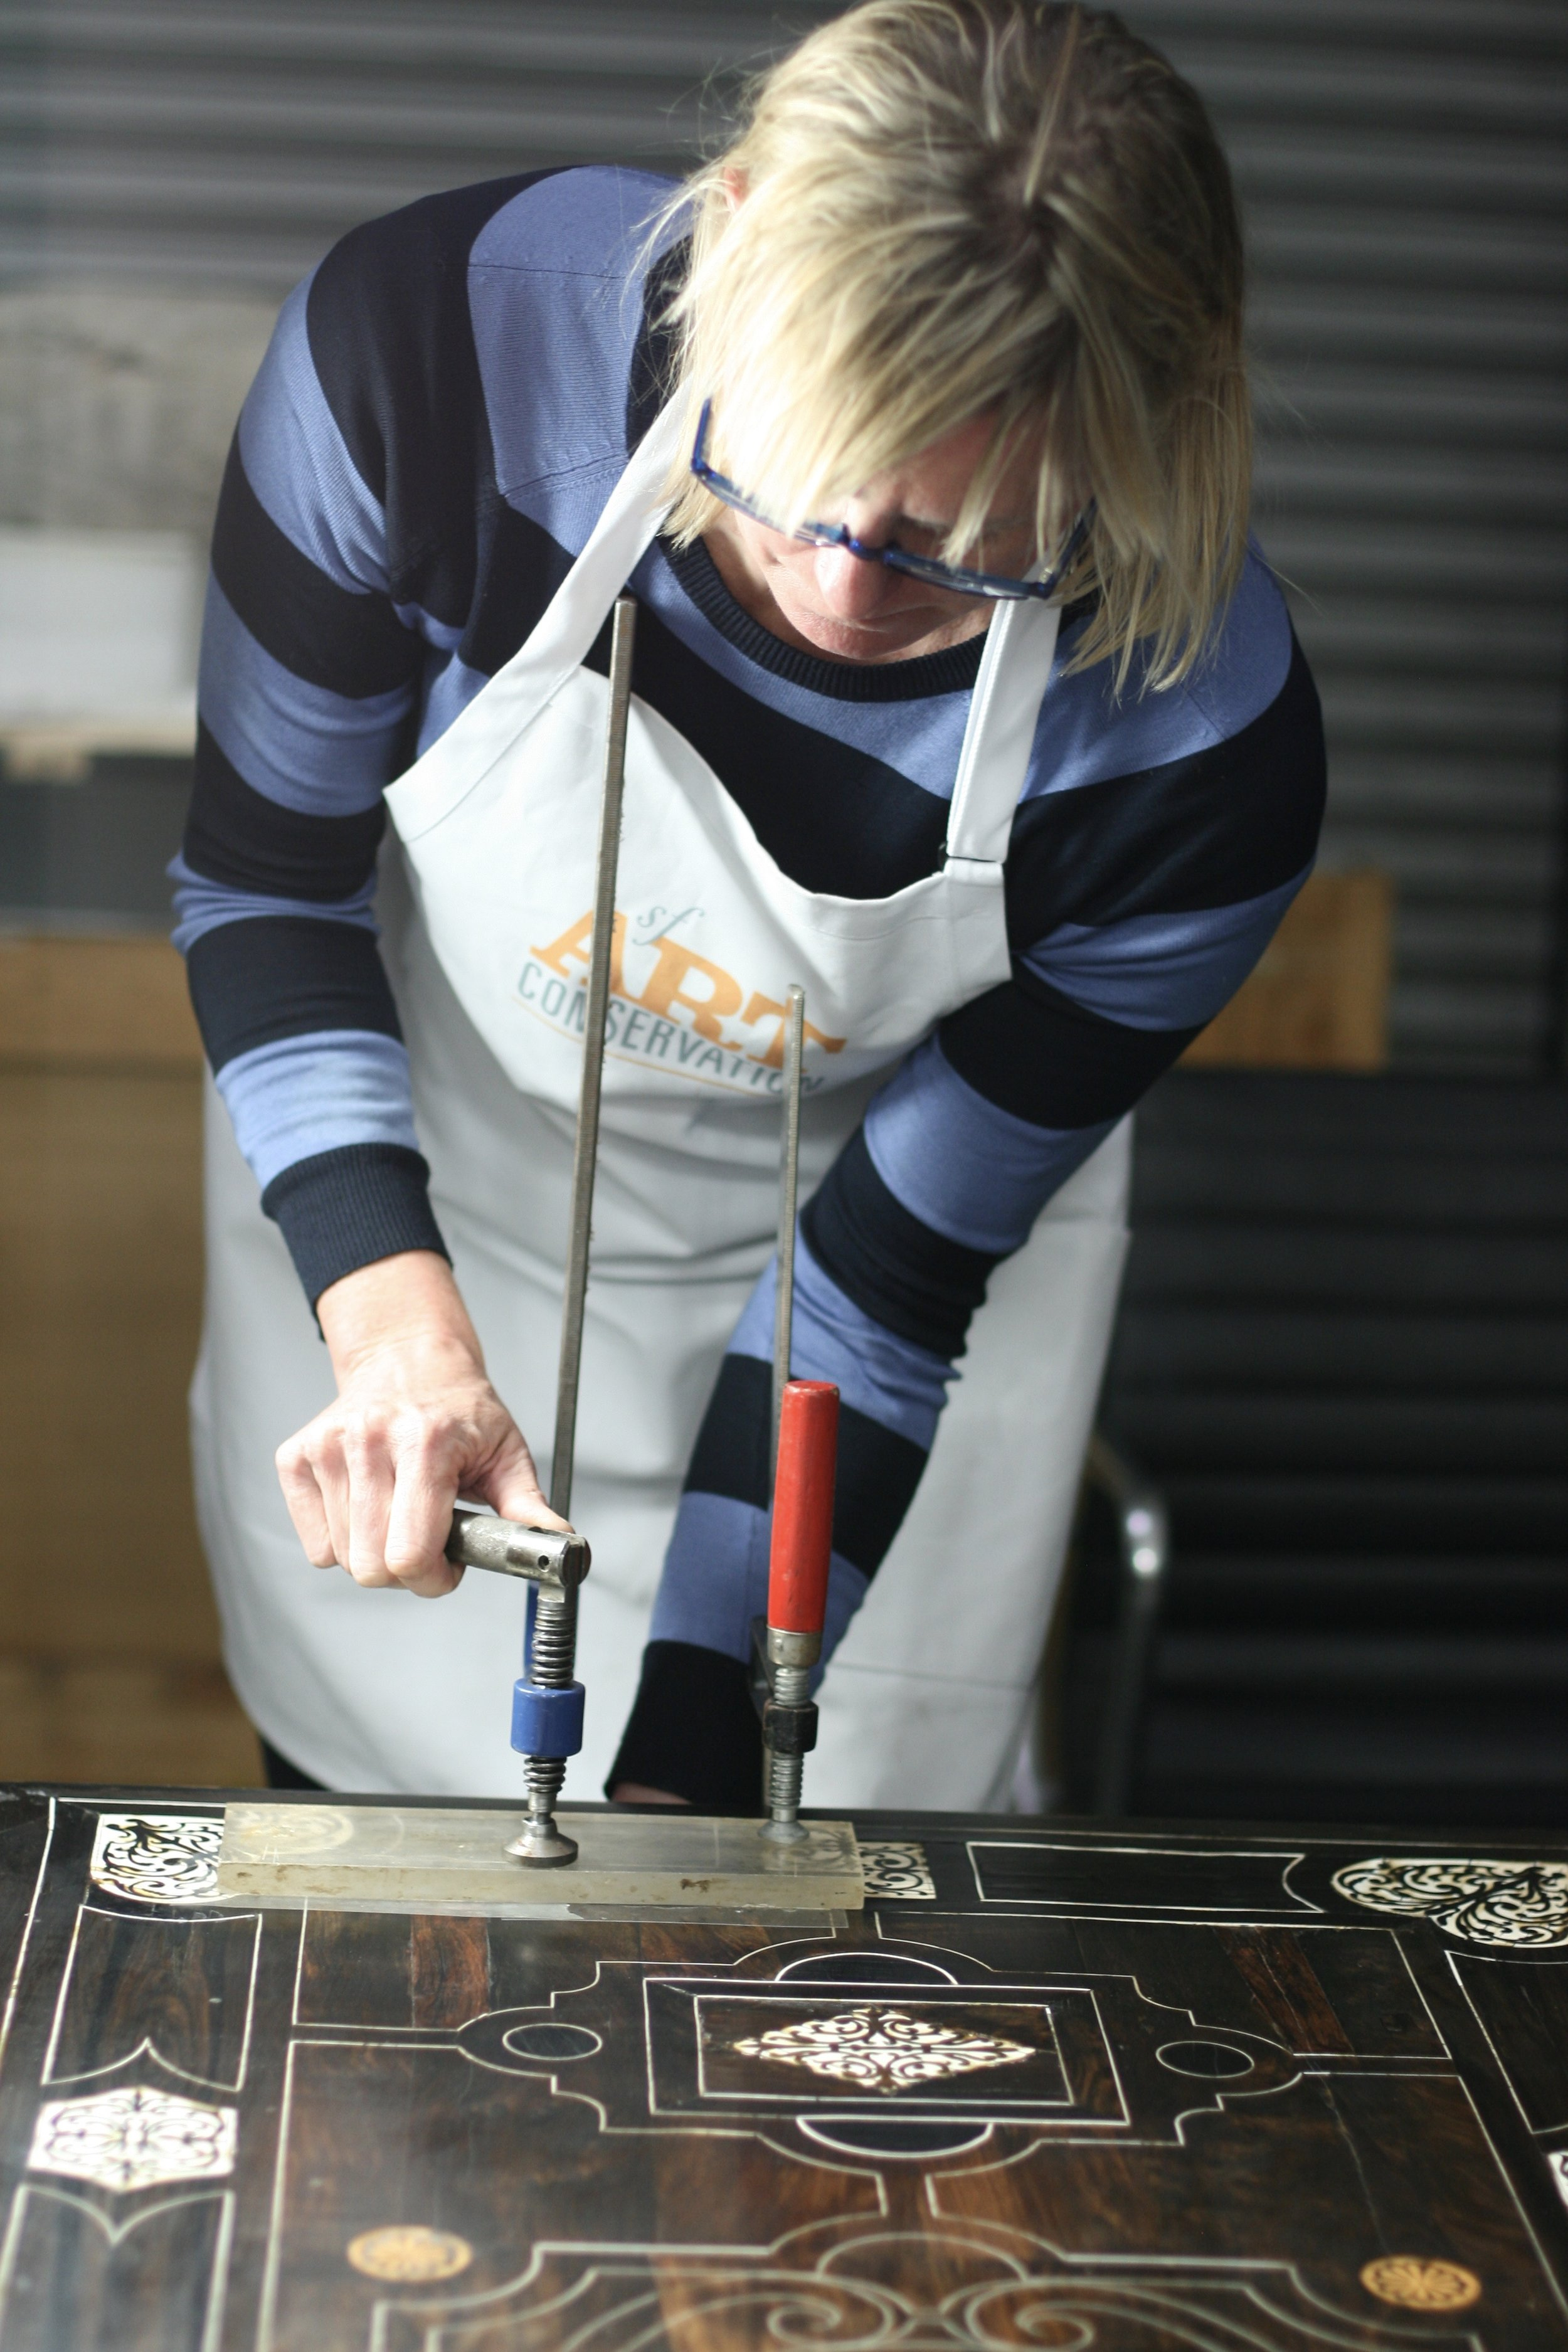 Sarah Johnson, a specialist in furniture, repairs inlay